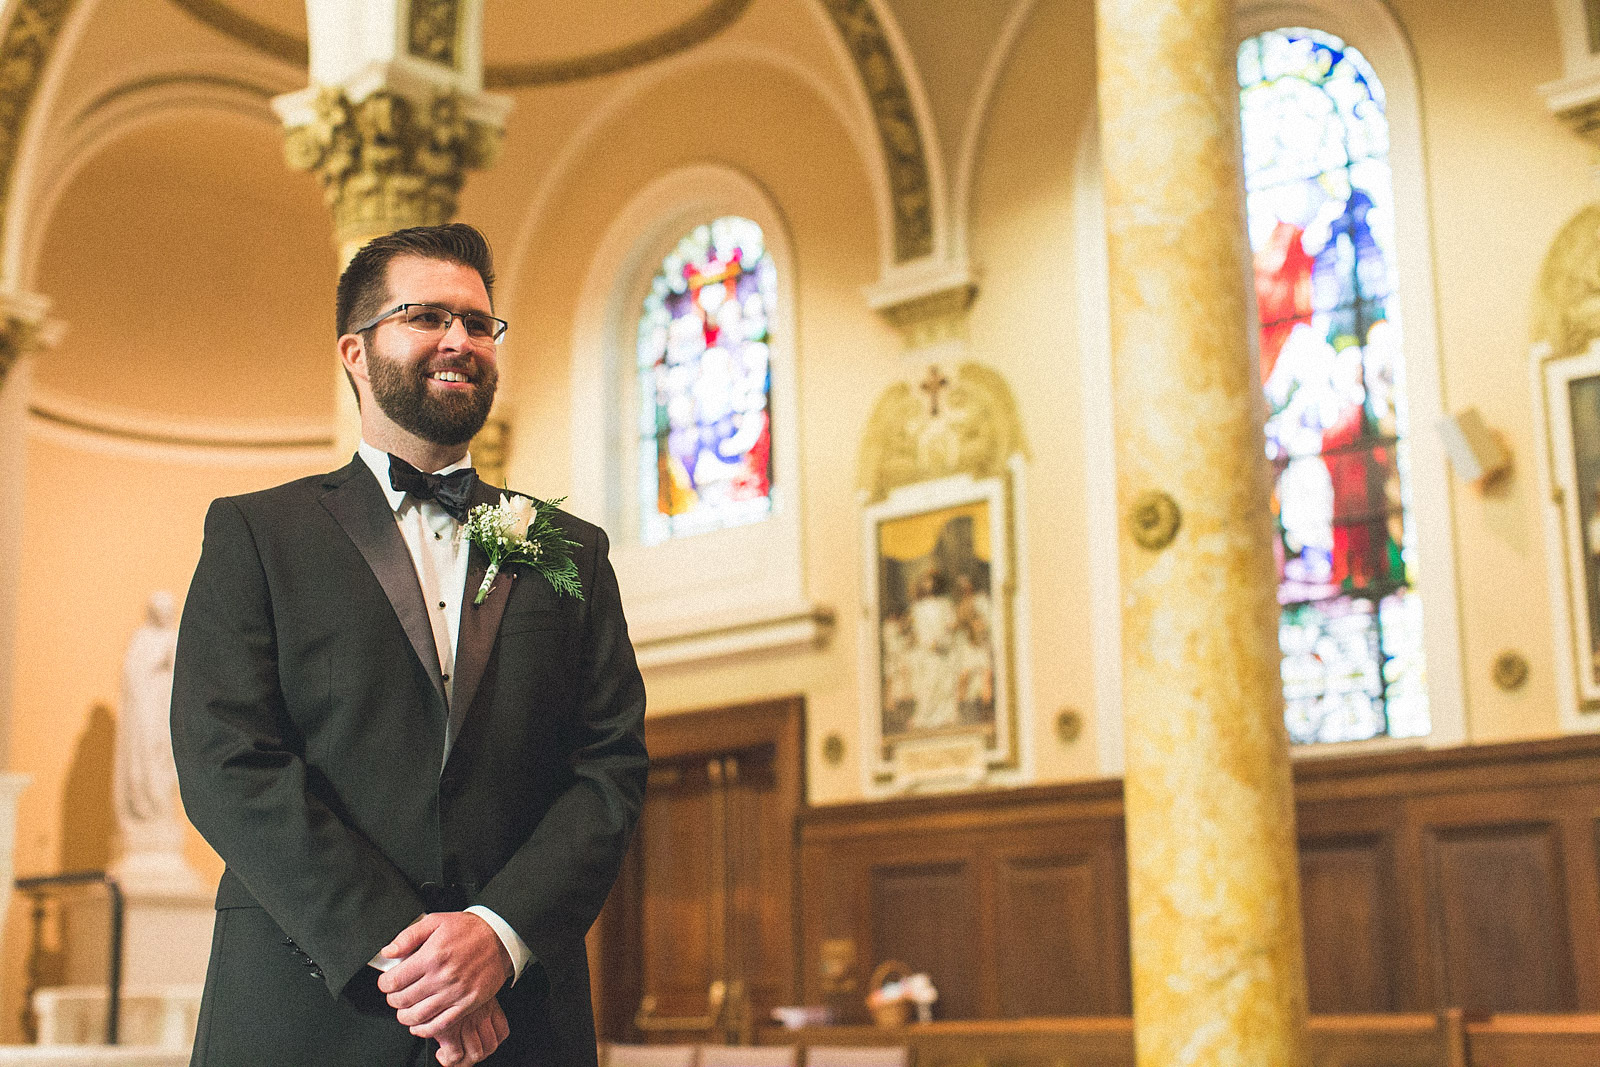 Groom sees Bride for the first time